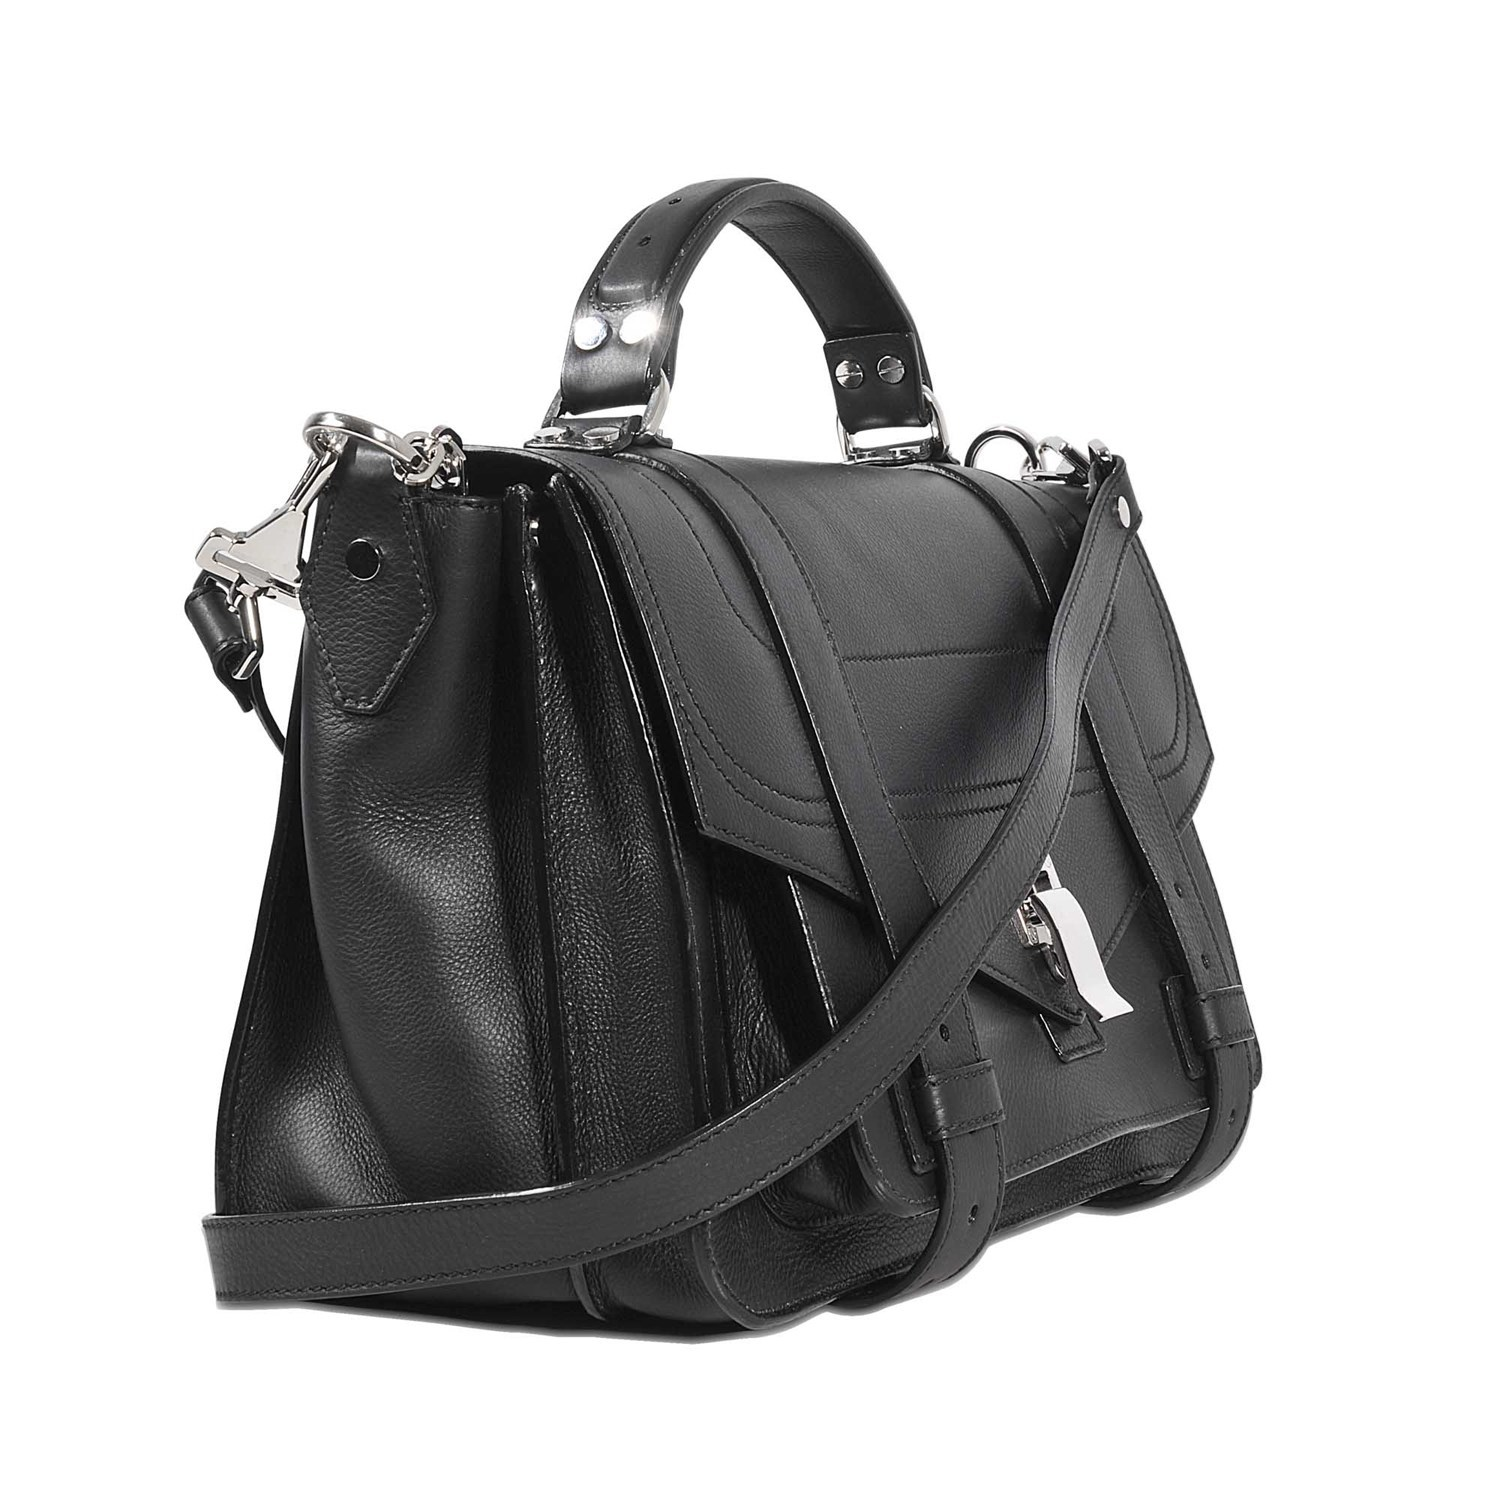 Proenza Schouler Ps1 Price | Ps1 Bag | Ps1 Proenza